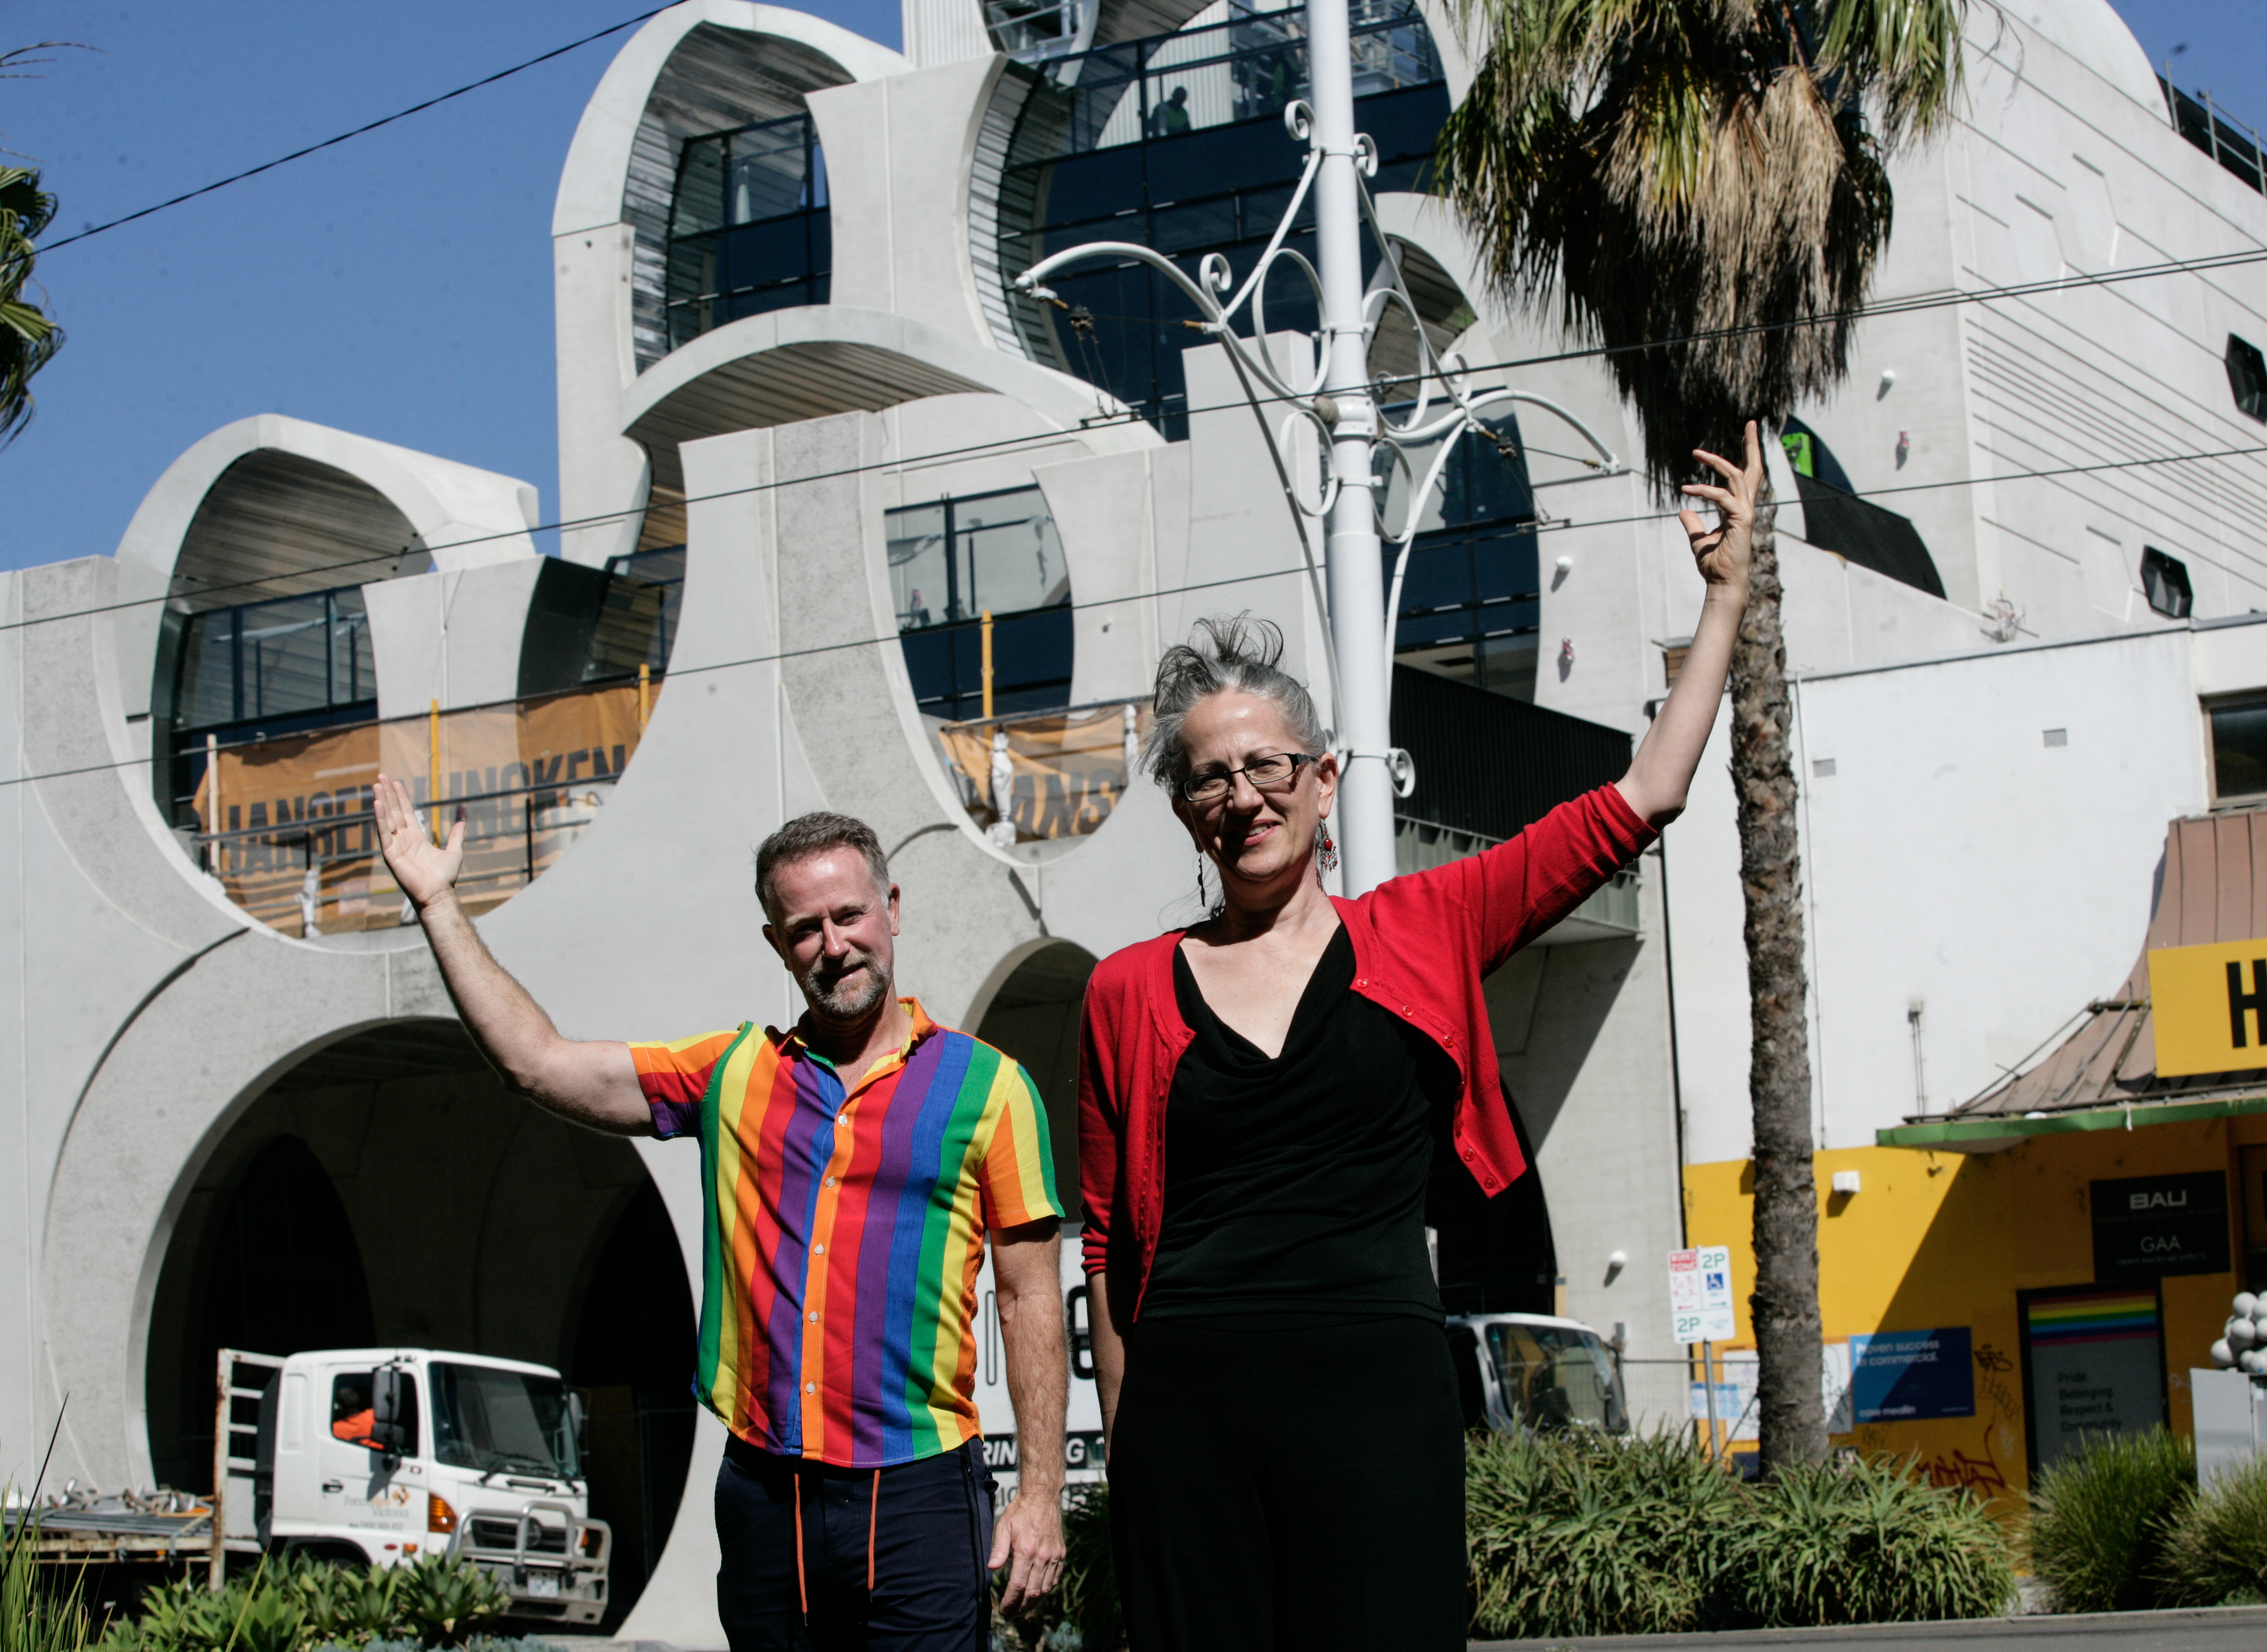 Stuart Kollmorgen from VPC and Karyn Bosomworth from Lord Mayors Charitable foundation stand in front of the pride centre on a sunny day pointing upwards. Stuart is wearing a rainbow shirt and Karyn is wearing black with a red cardigan. Photo Credit: Serge Thomann